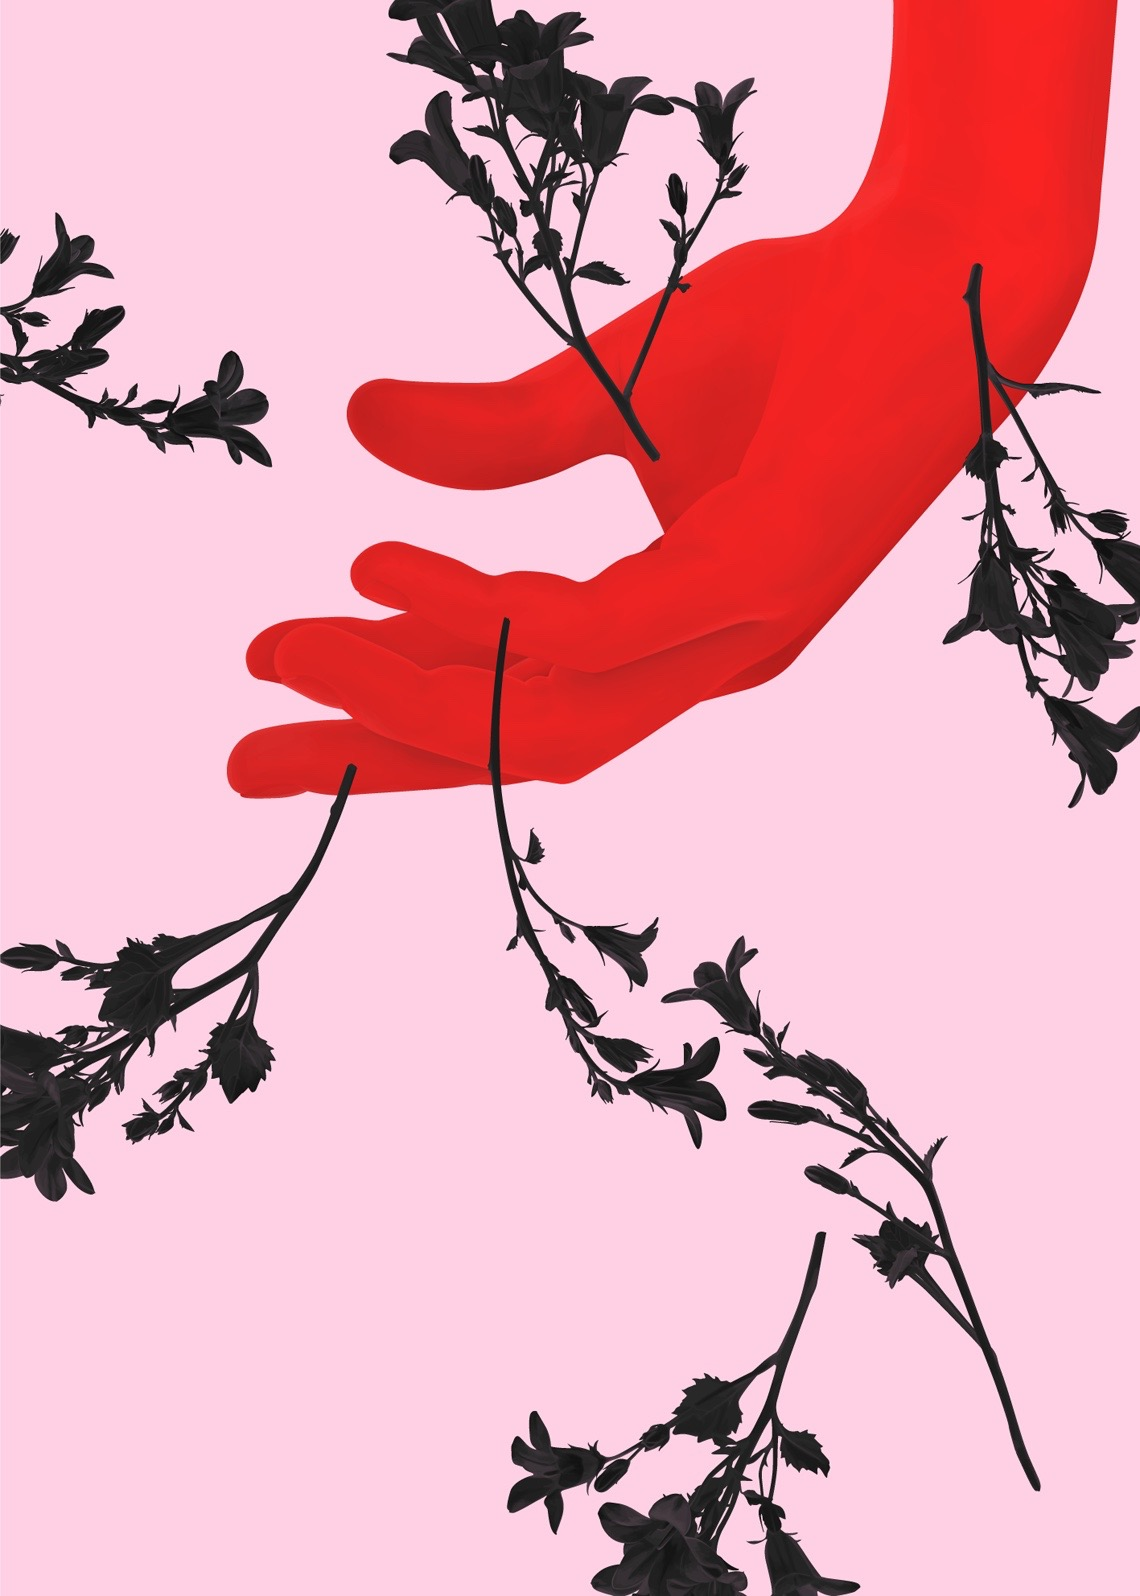 illustration, illustrations, illustrator, illustrators, hand, hands, flower, flowers, plant, plants, pattern, decoration, layer, layered, layers